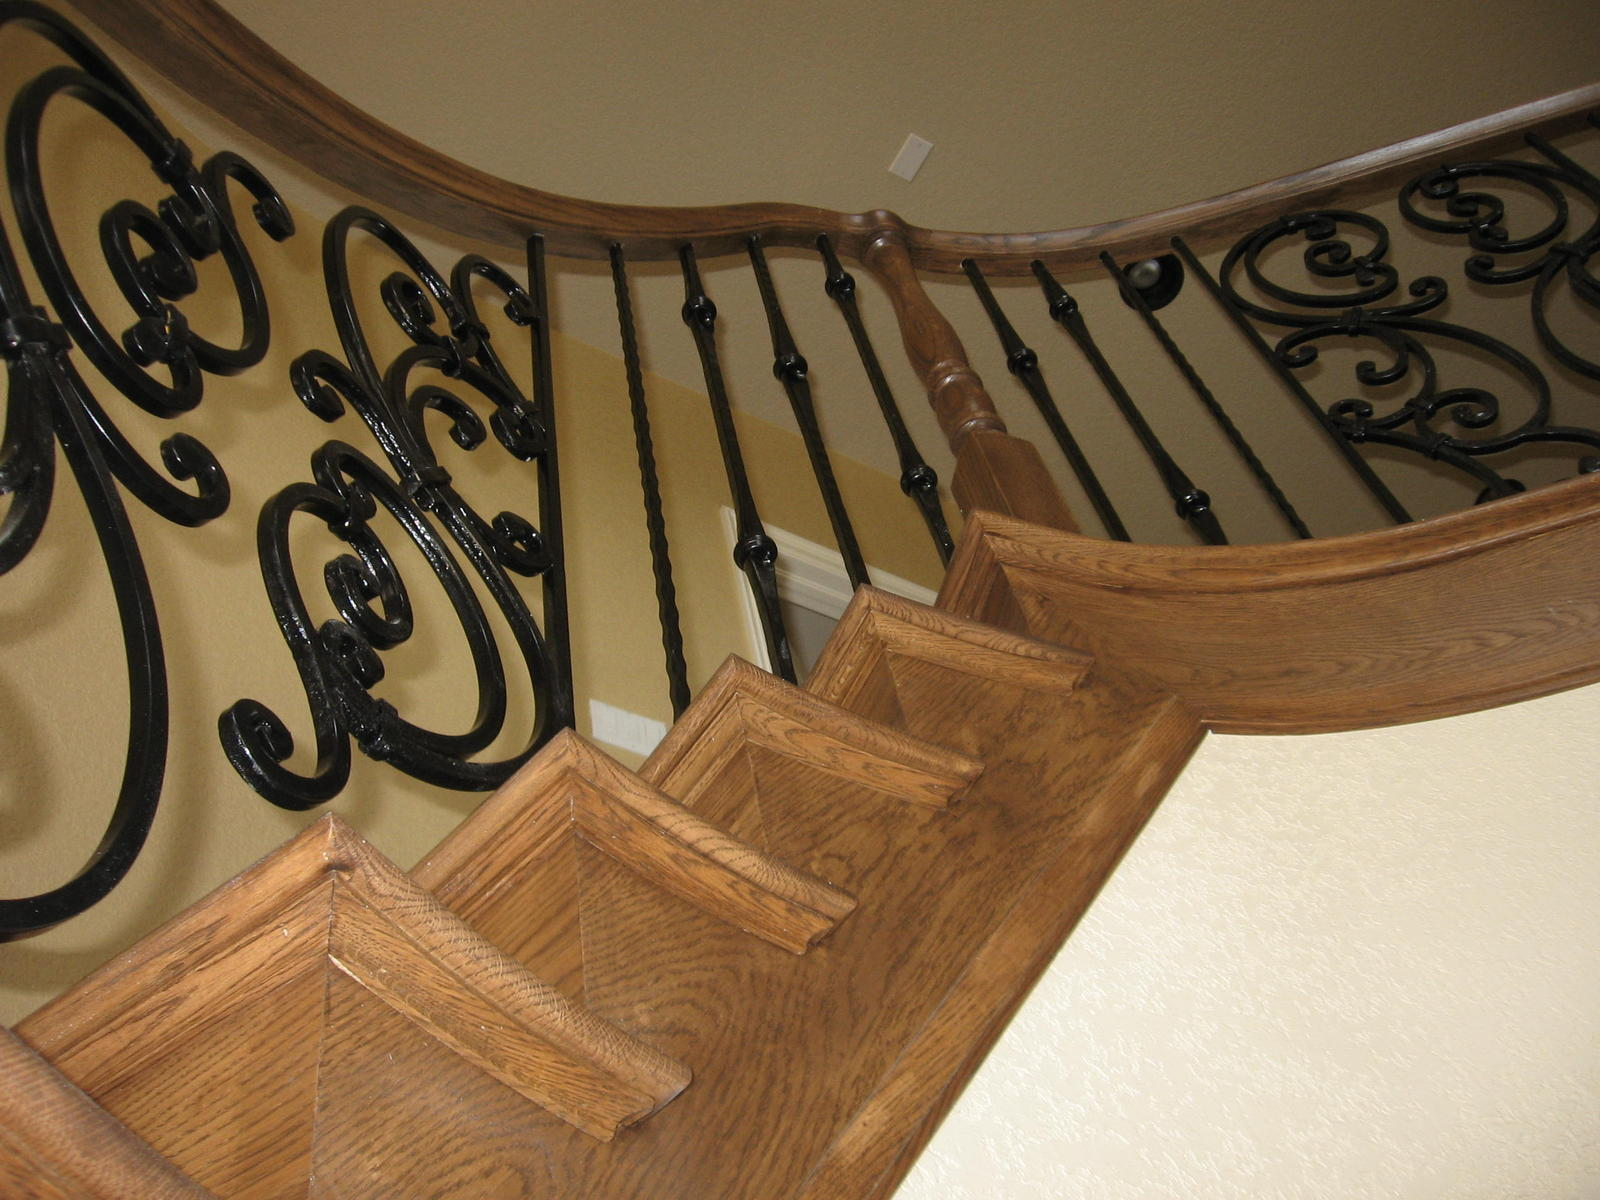 Amazing Wooden Handrails For Stairs With Curves Ideas With Yellow Wall